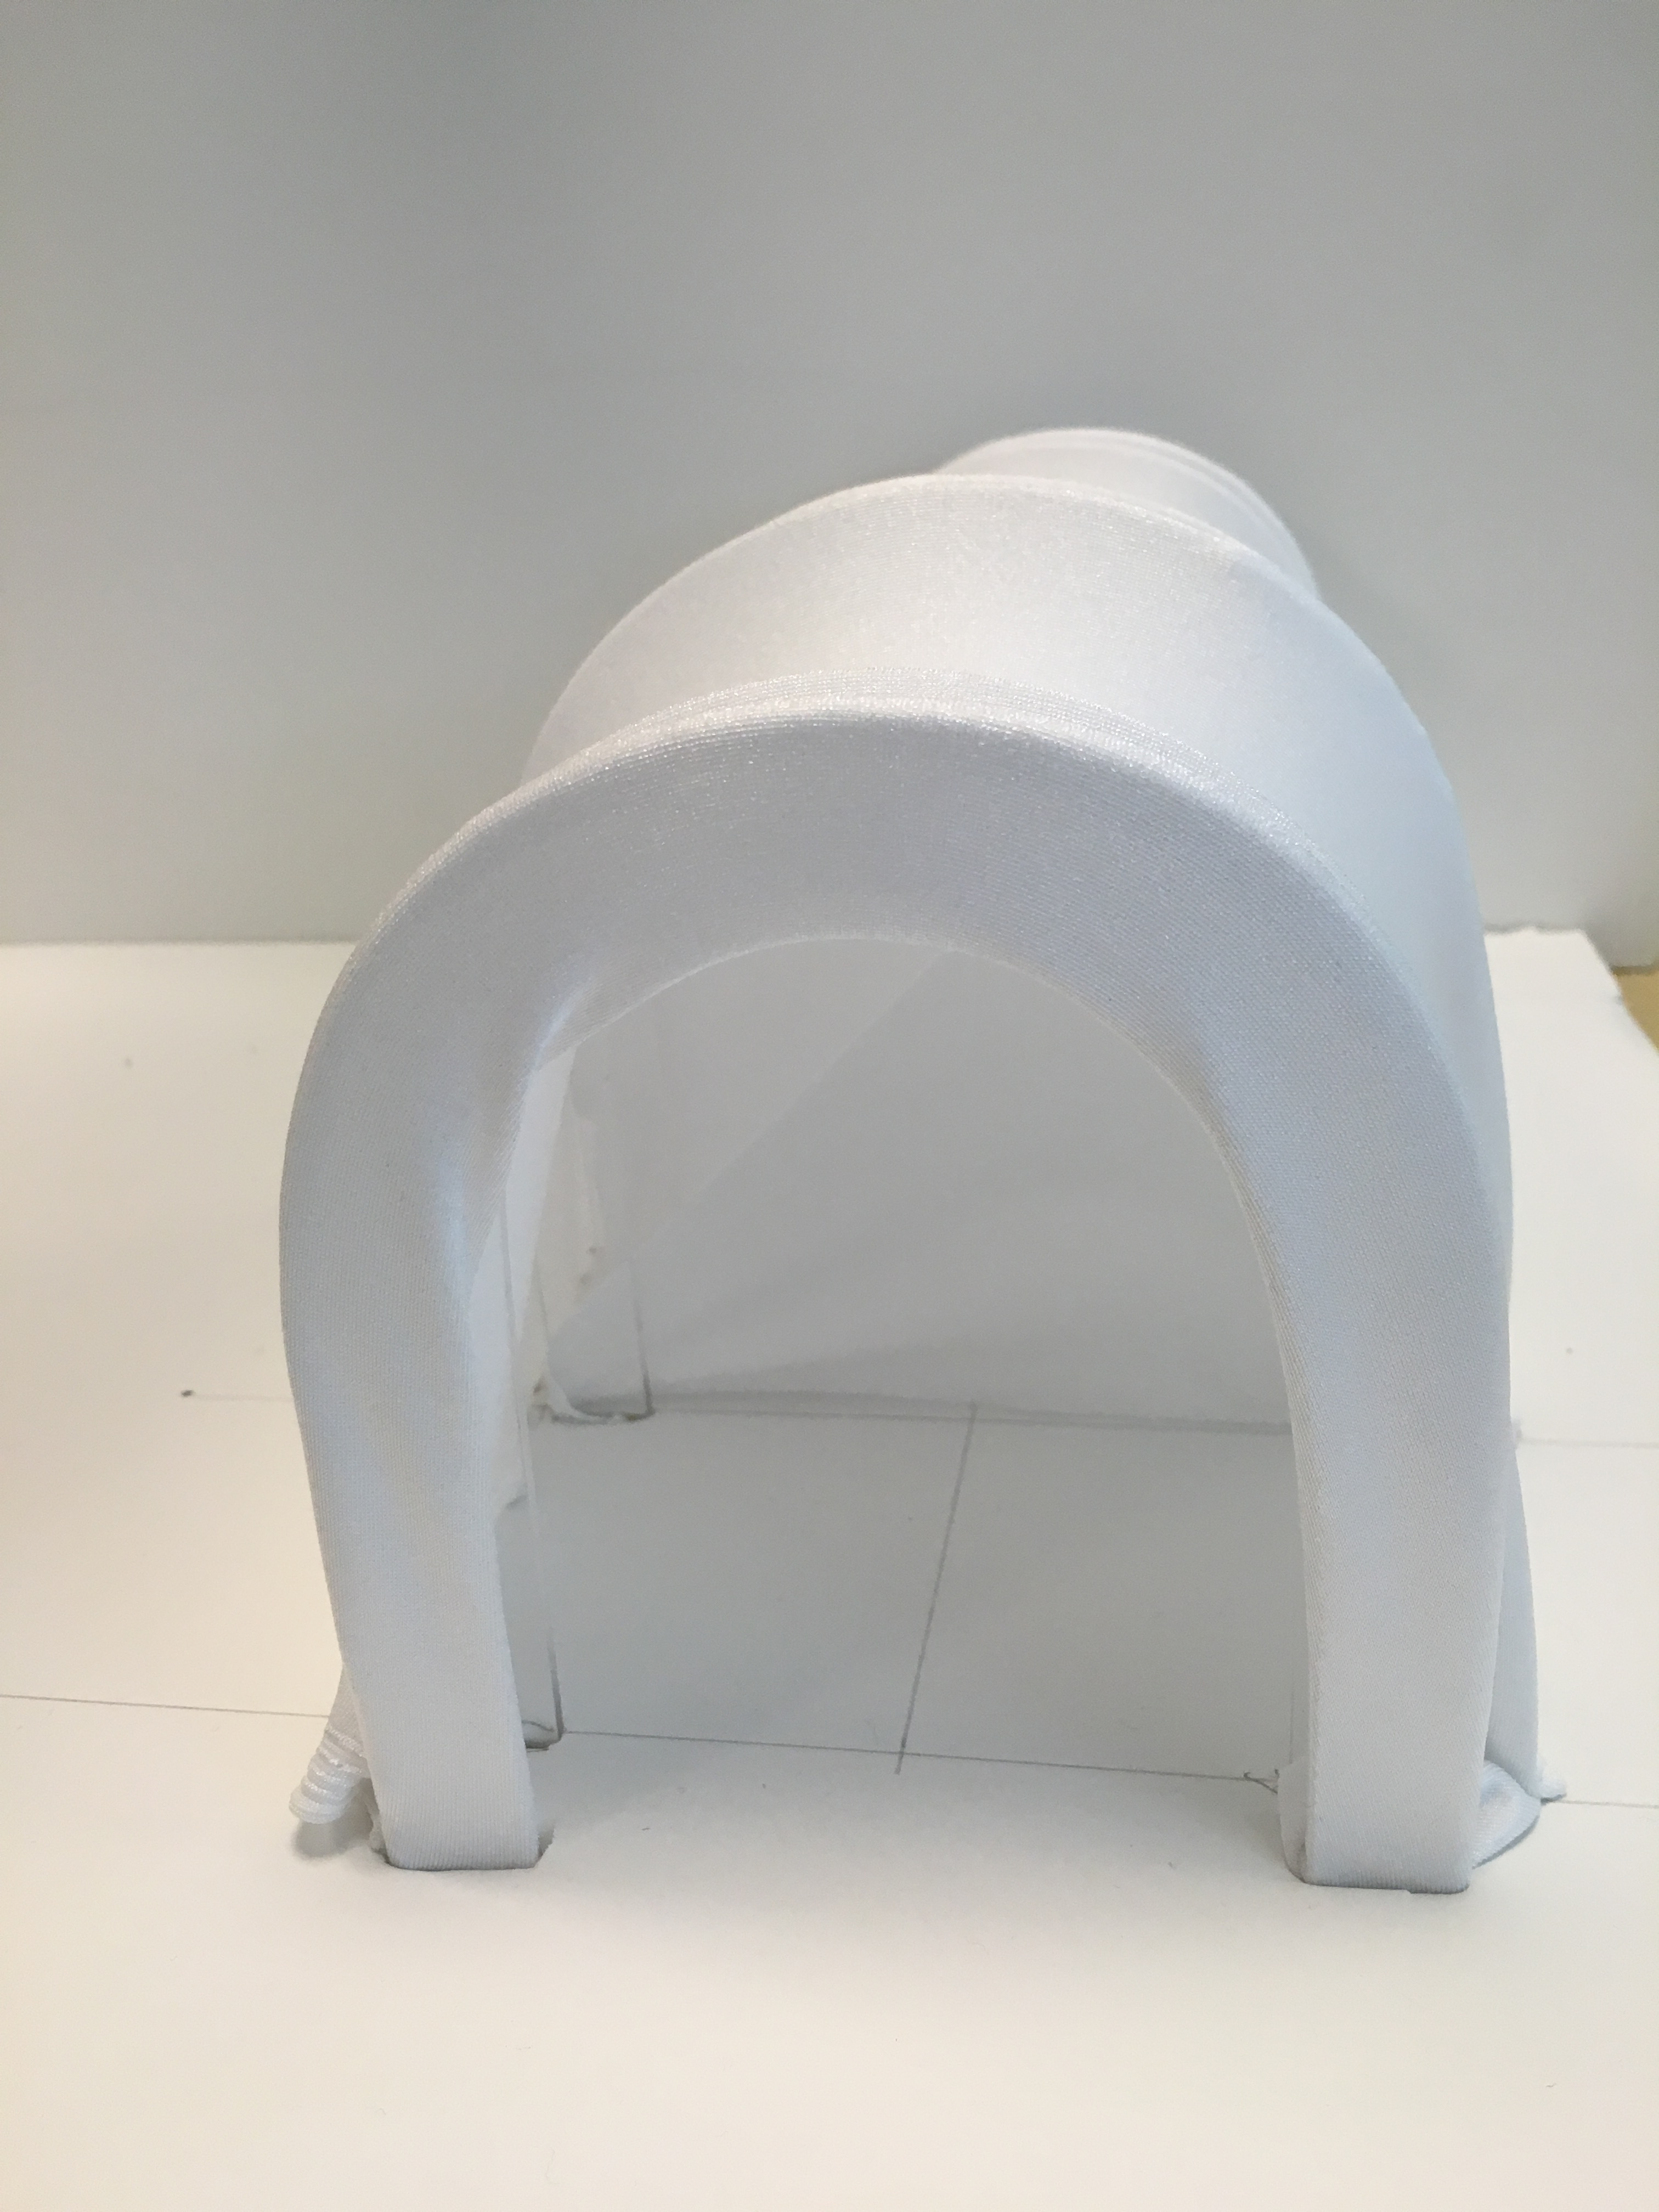 Front view of Tunnel scale model.